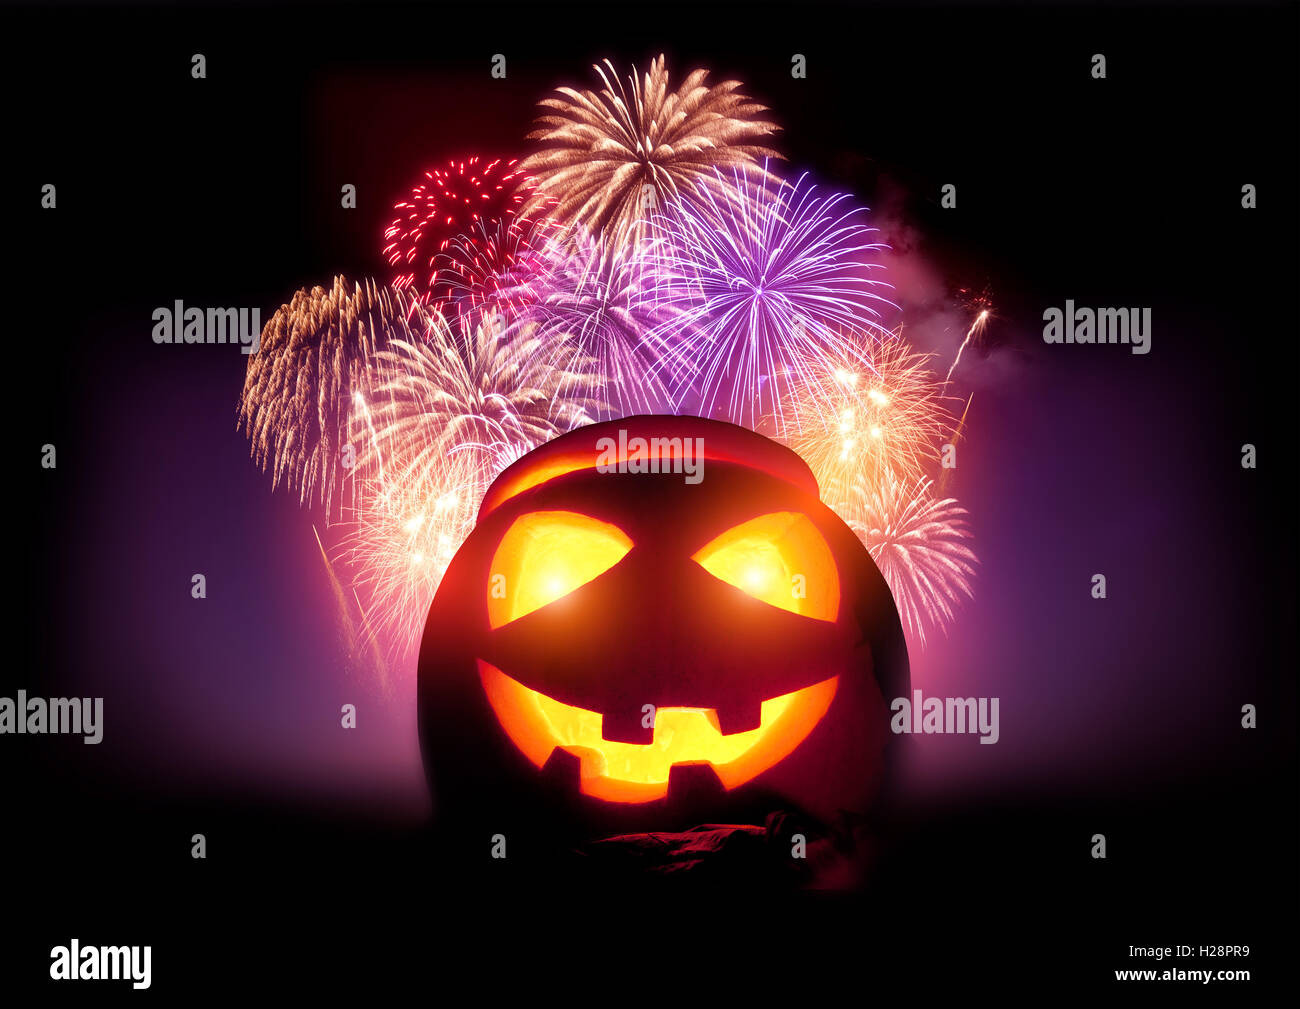 Halloween Fireworks Party. Glowing Jack O' Lantern pumpkin with a fireworks display event. - Stock Image